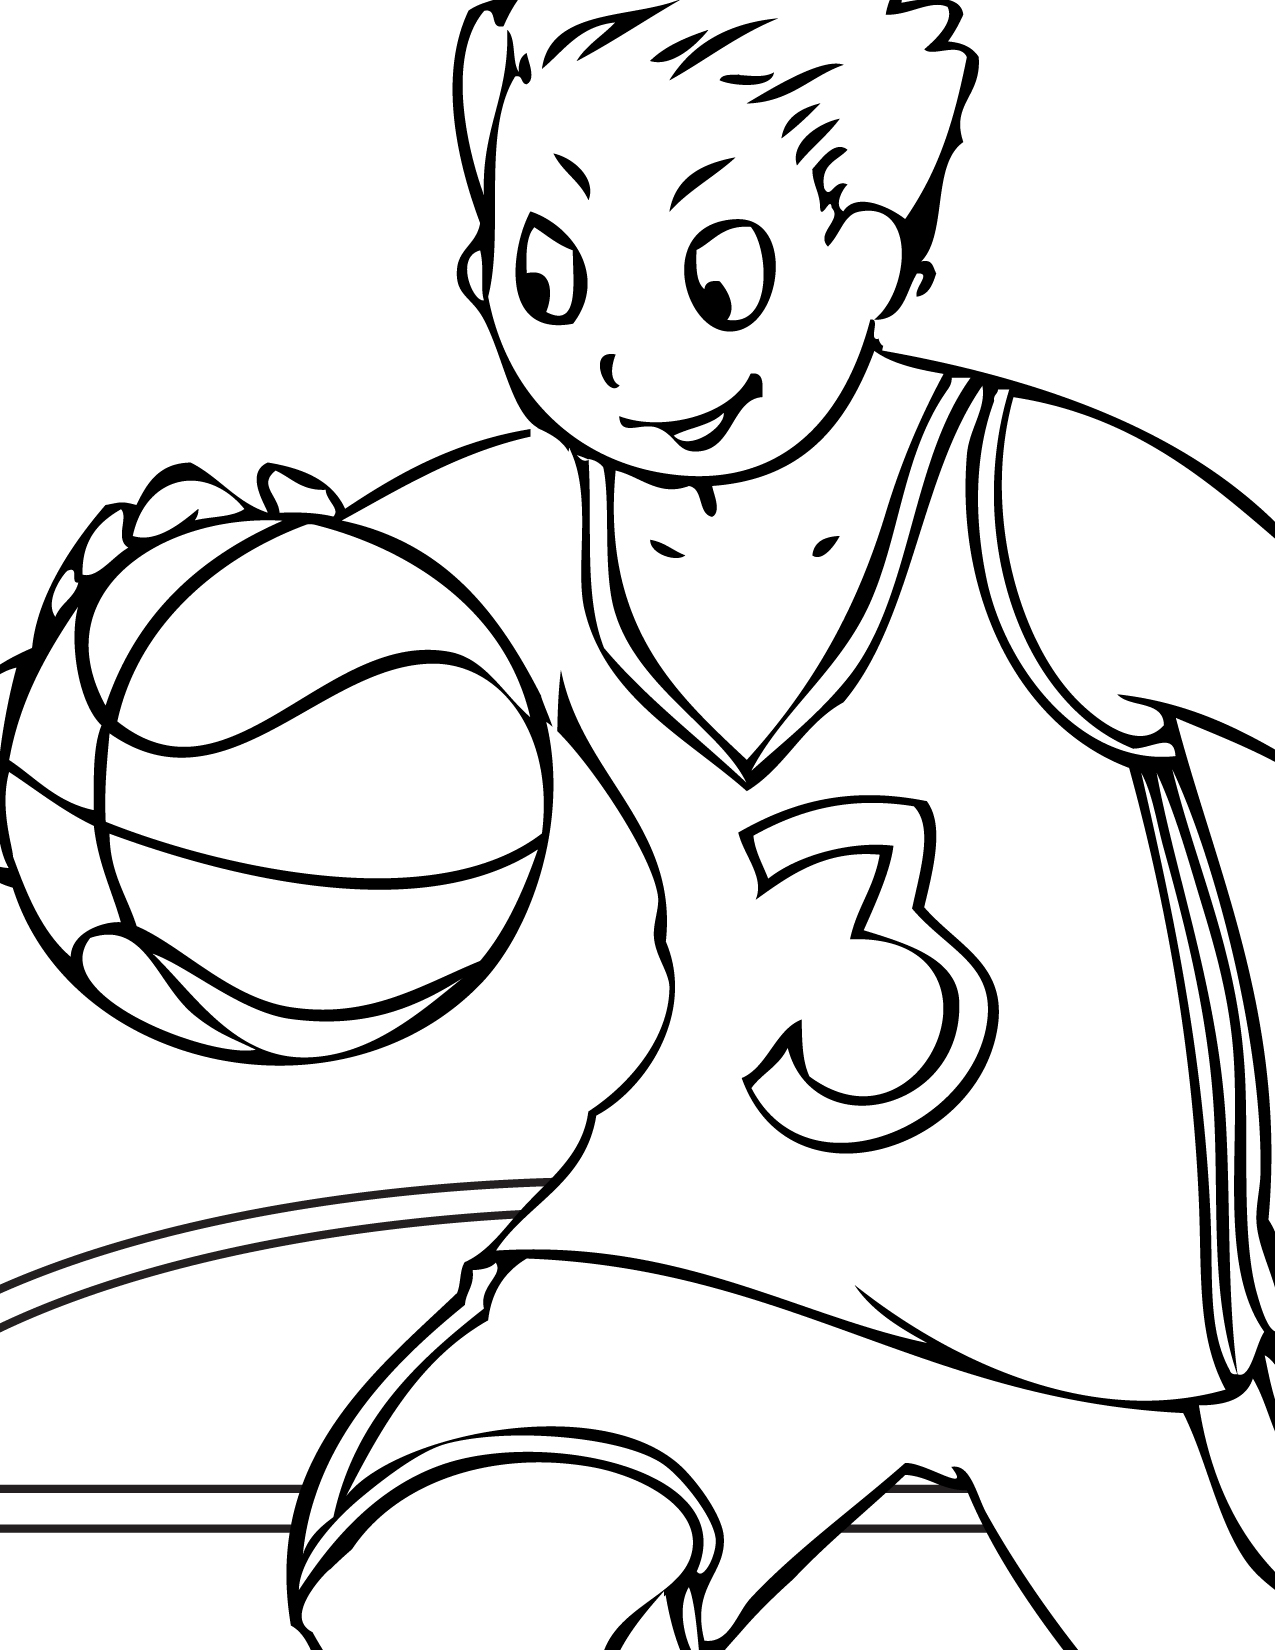 Printable Sports Coloring Pages Coloring Me Sports Coloring Pages For Boys Printable